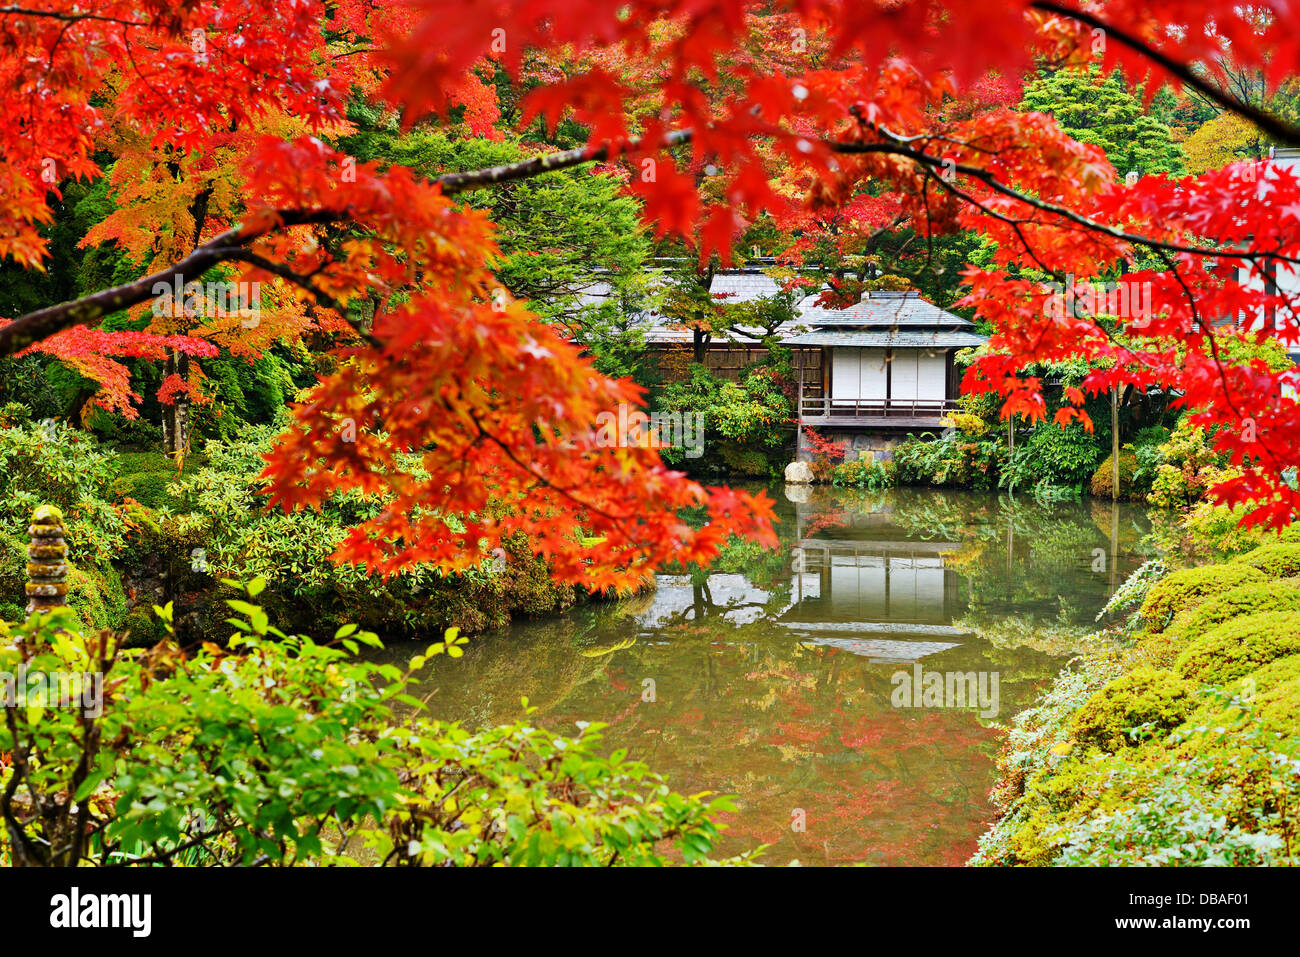 Japanese garden in Nikko, Japan. - Stock Image